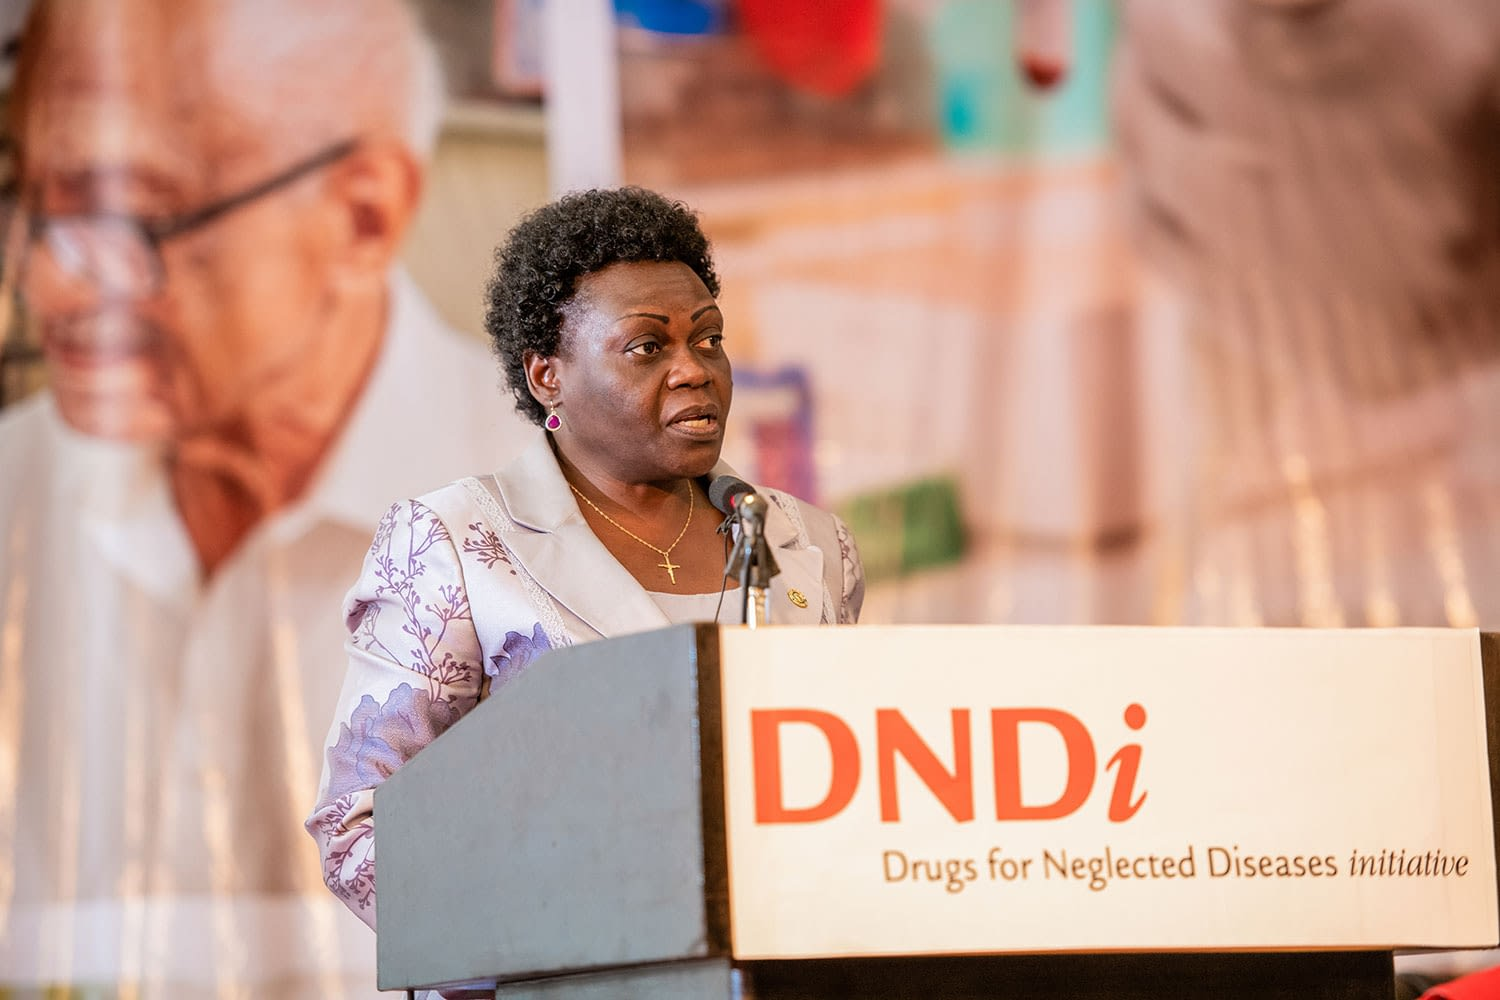 Hon. Sarah Opendi, Uganda's Minister of State for Health, gives a speech about the role of partnership networks in helping to combat neglected diseases in Uganda.